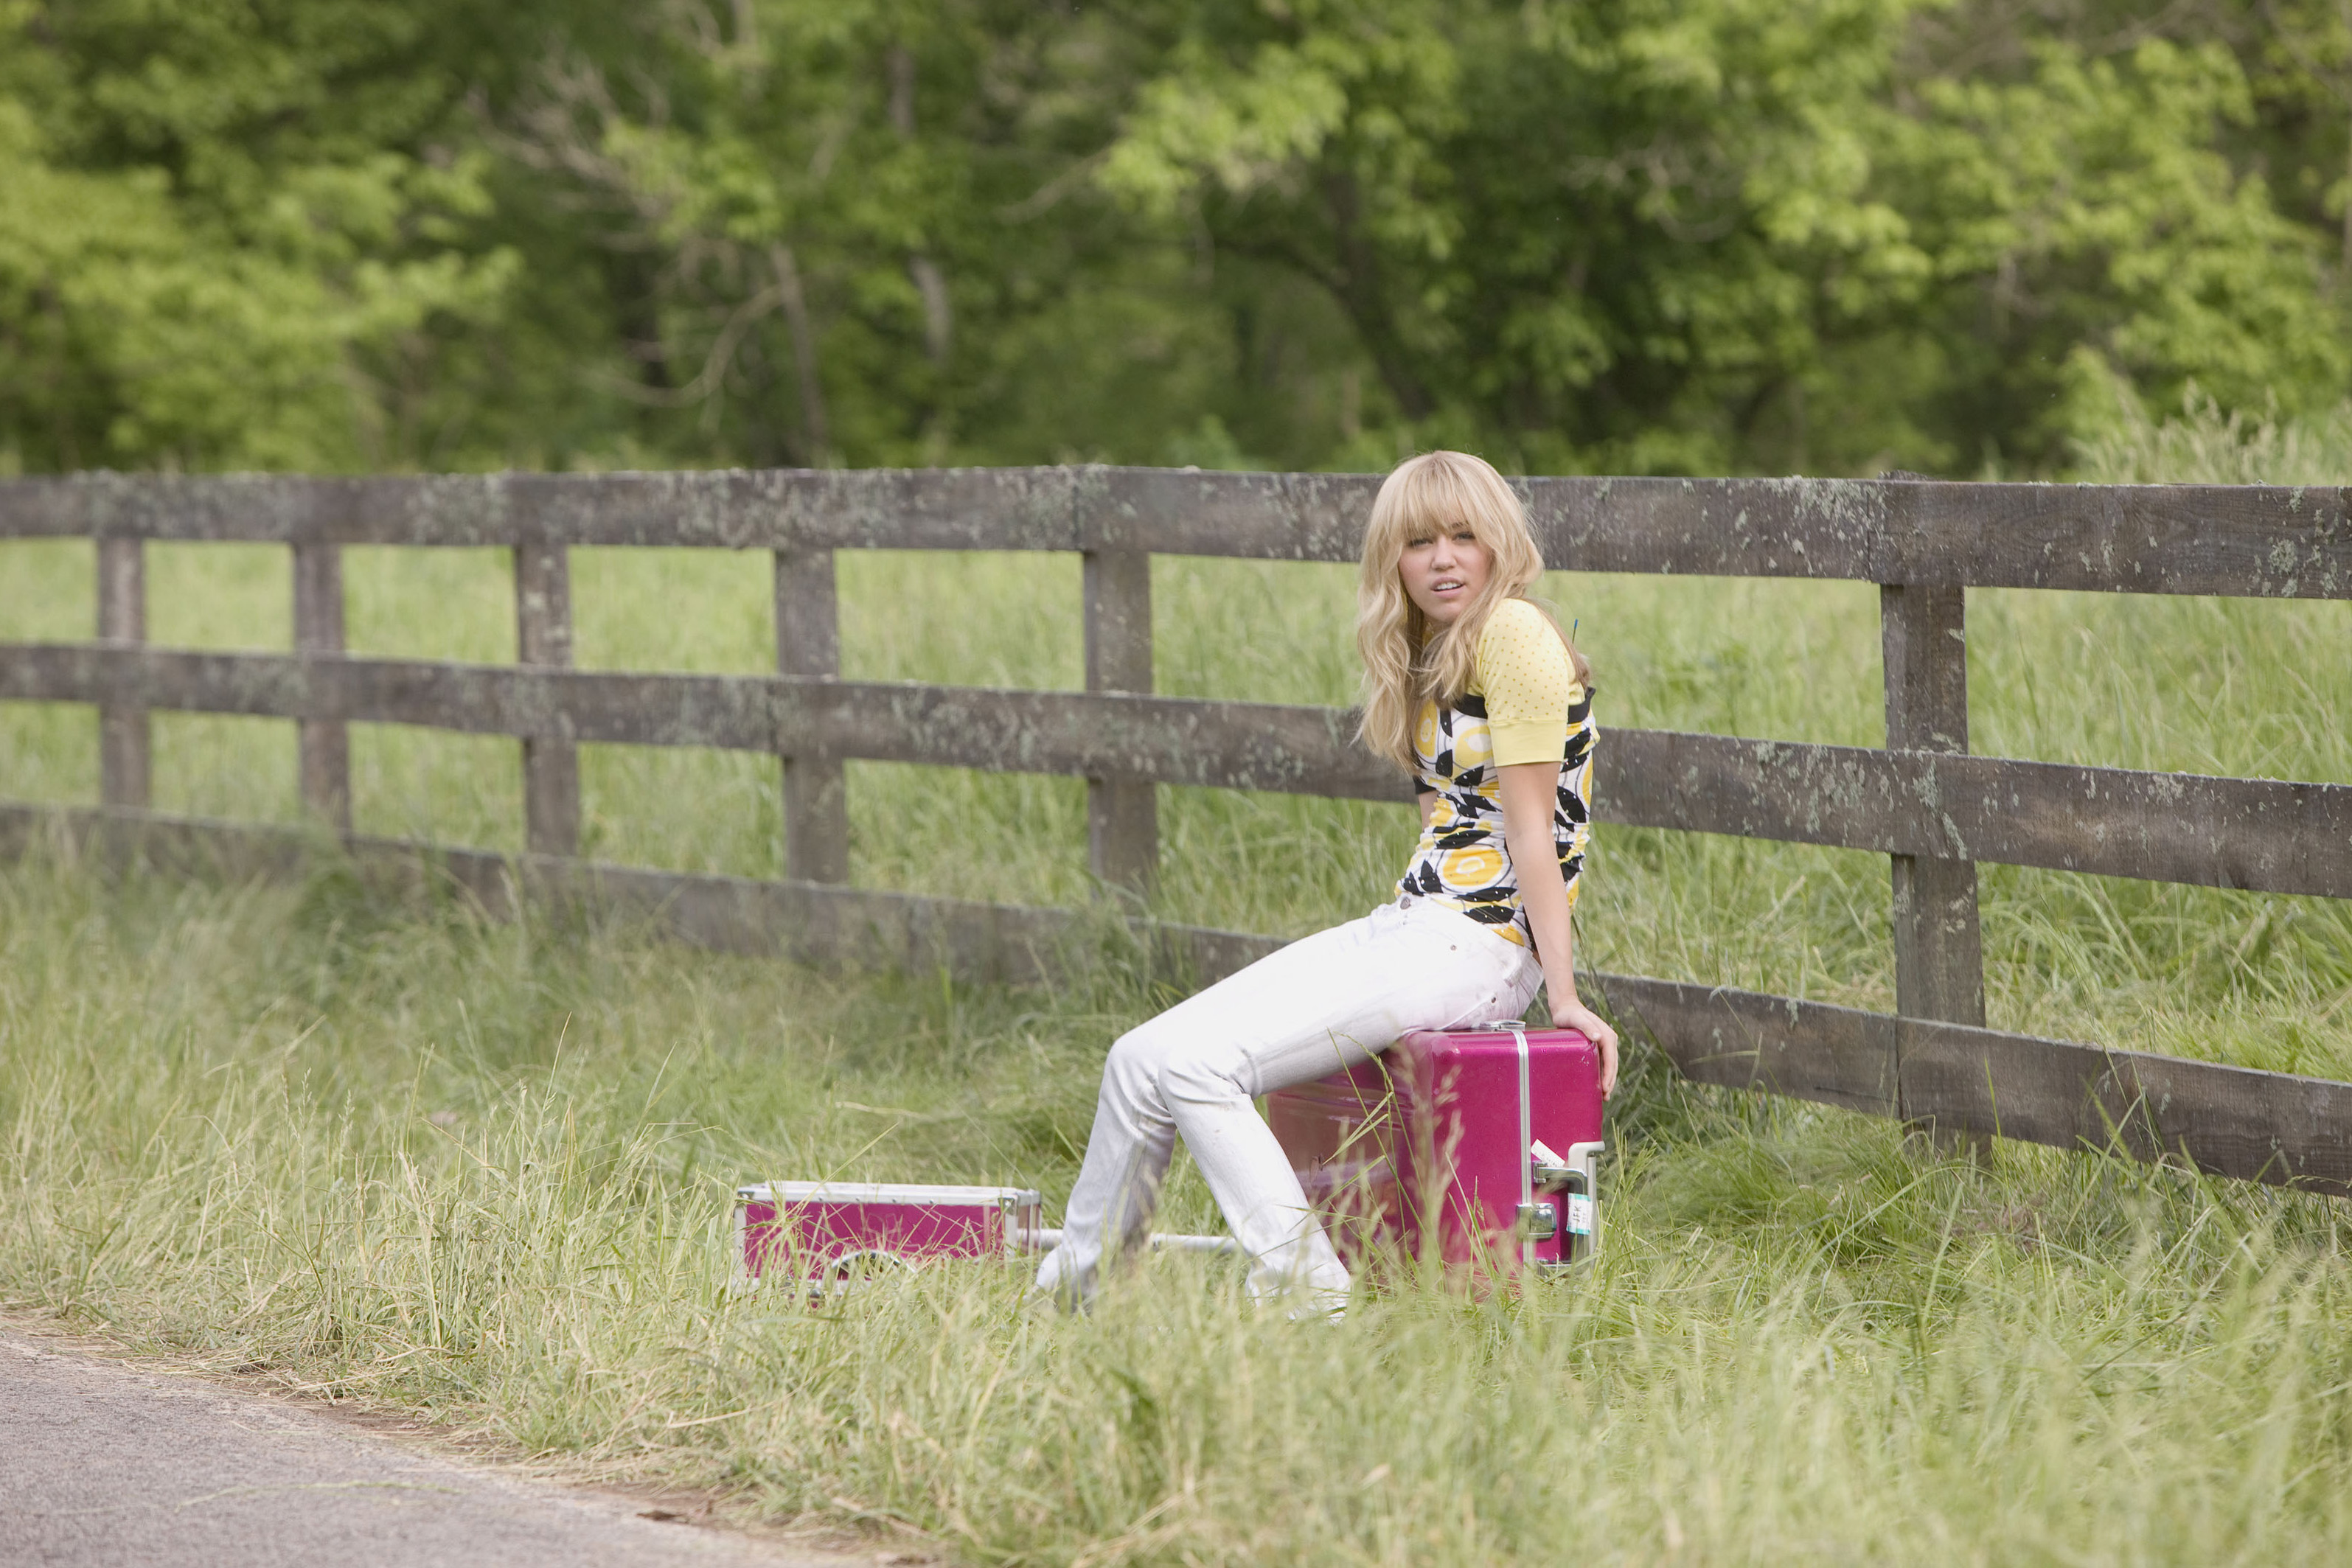 """Miley Stewart (Miley Cyrus) contemplates country life in """"Hannah Montana: The Movie."""""""